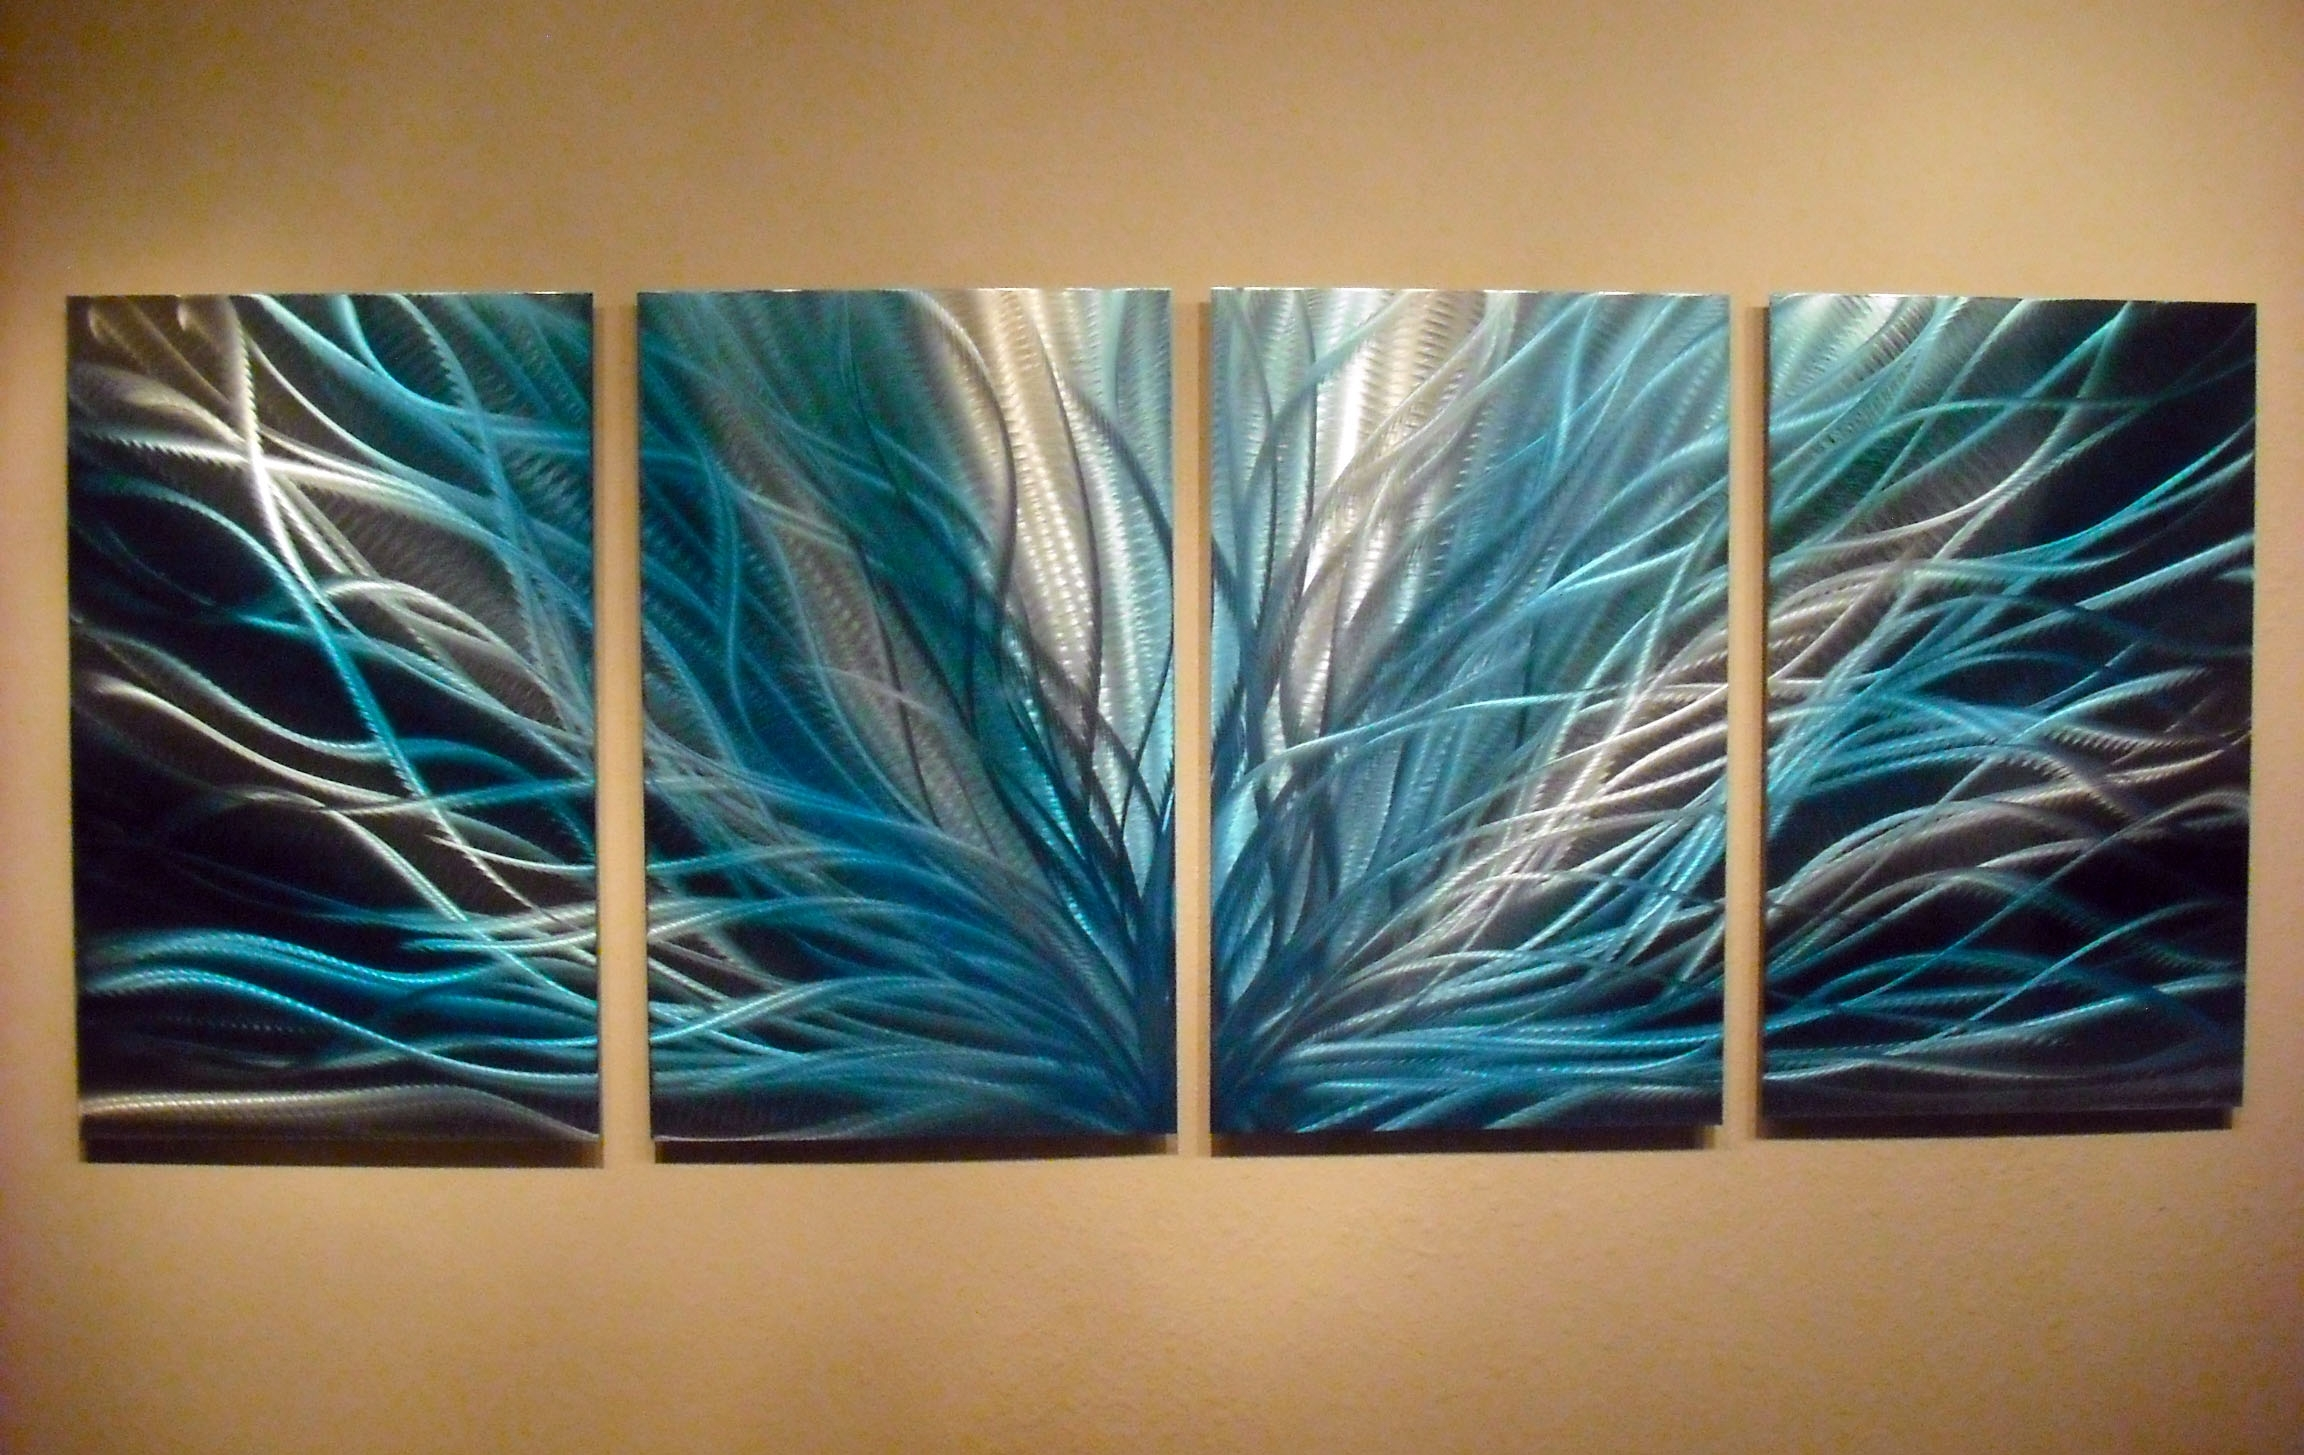 Radiance In Blues  Abstract Metal Wall Art Contemporary Modern Within Most Up To Date Abstract Metal Wall Art Painting (Gallery 3 of 20)